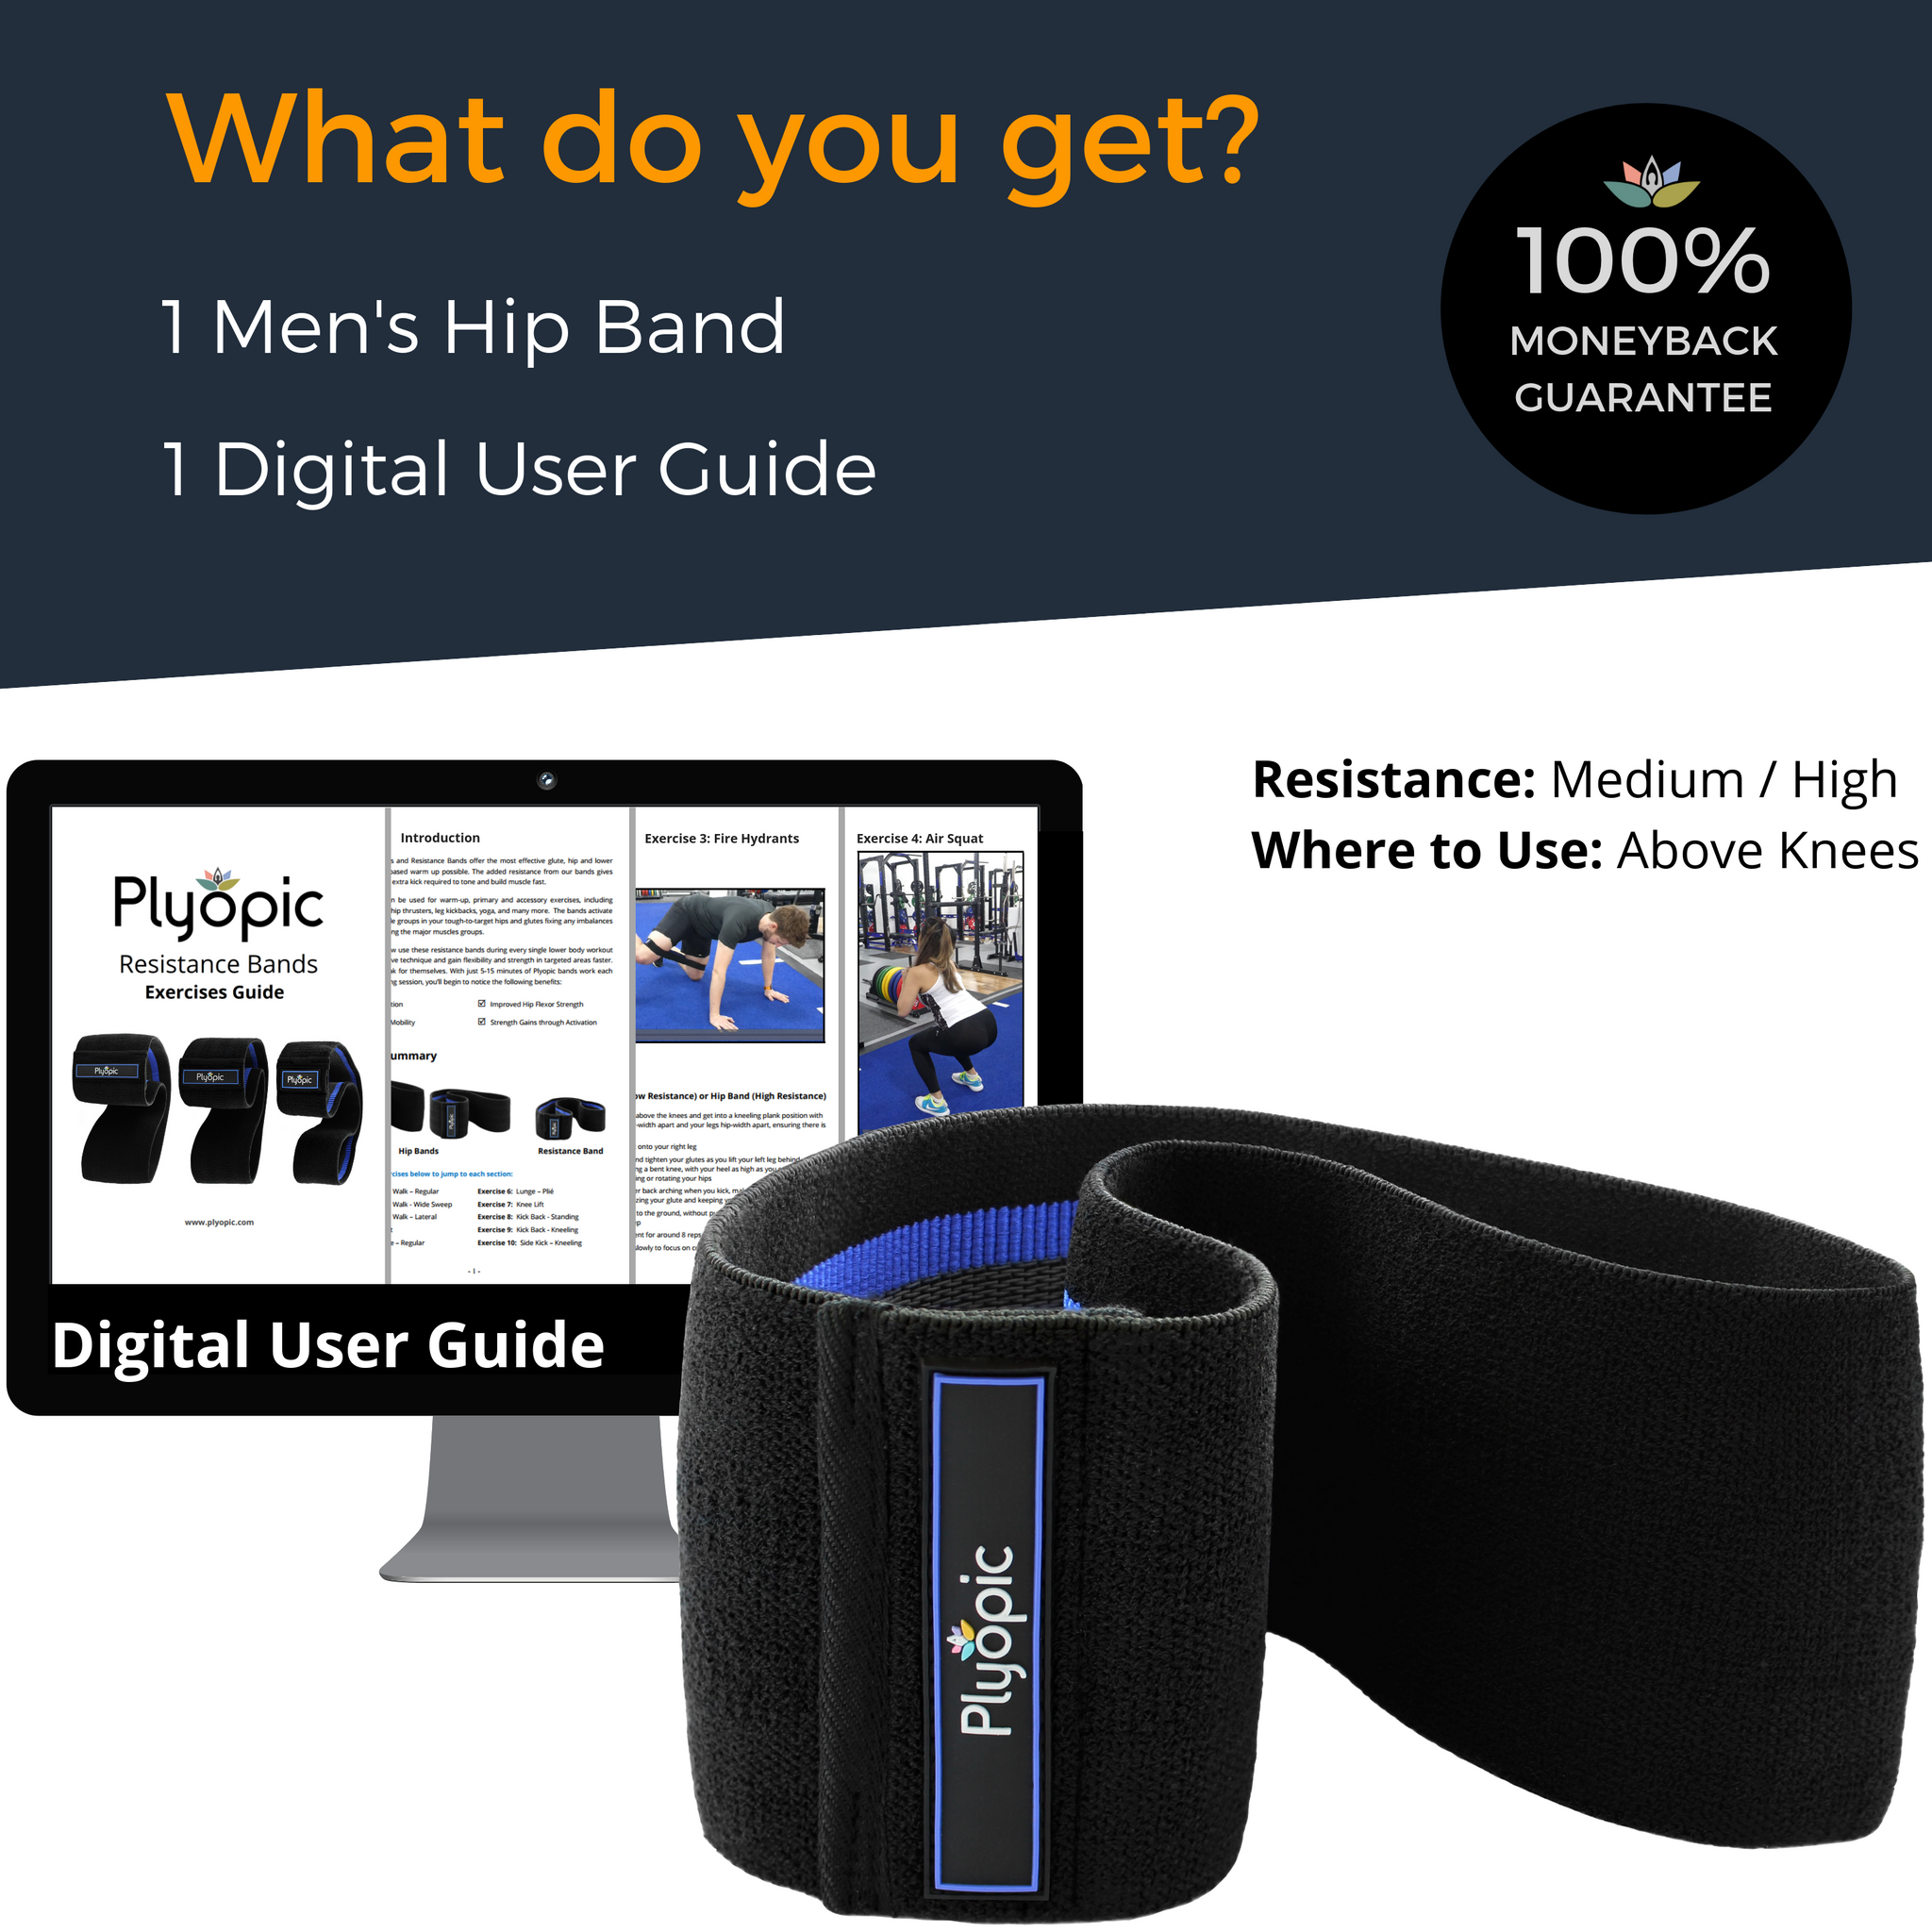 Plyopic-Men's Hip Band (For Upper Legs)-Hip Resistance Band and Digital User Guide